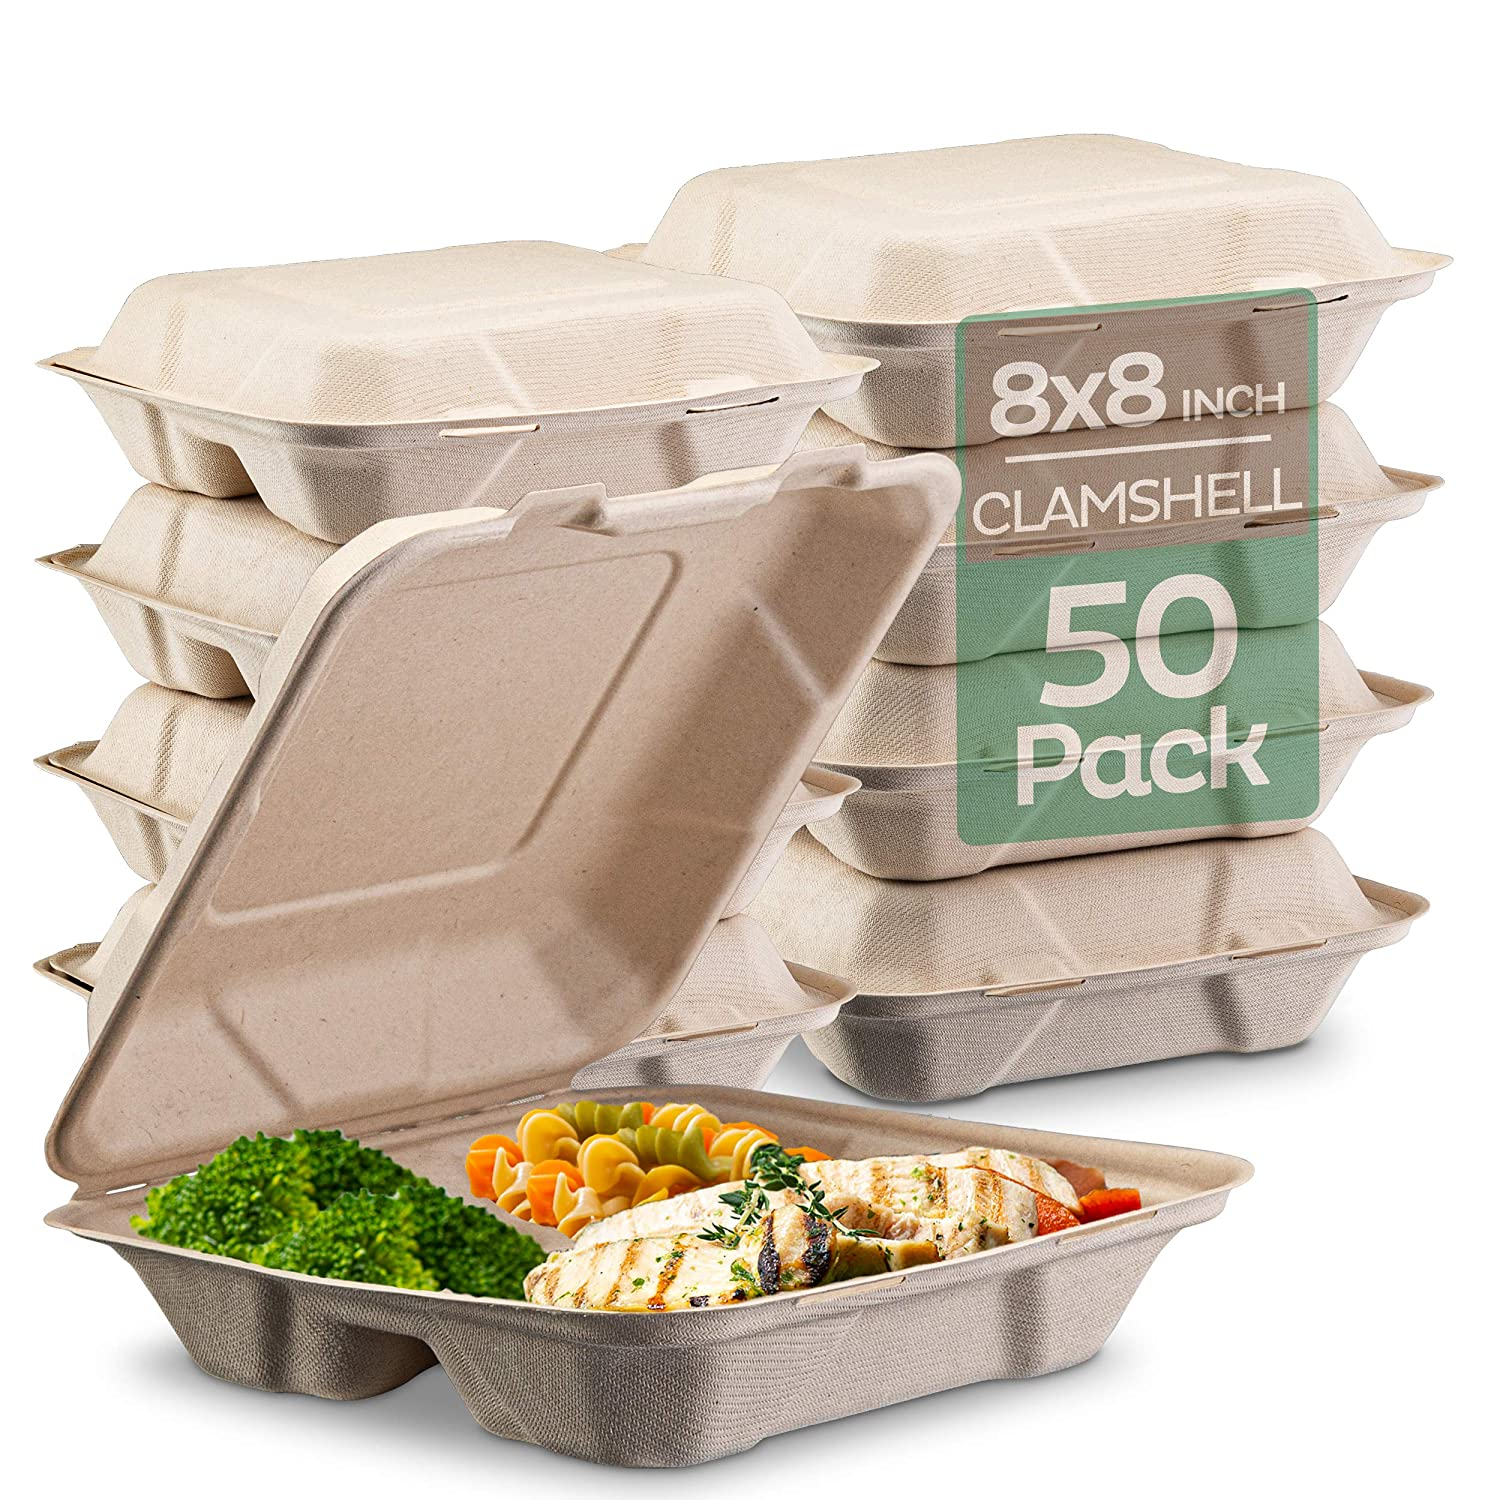 """Amazon.com: 100% Compostable Clamshell Take Out Food Containers [8X8"""" 3-Compartment 50-Pack] Heavy-Duty Quality to go Containers, Natural Disposable Bagasse, Eco-Friendly Biodegradable Made of Sugar Cane Fibers: Industrial & Scientific"""